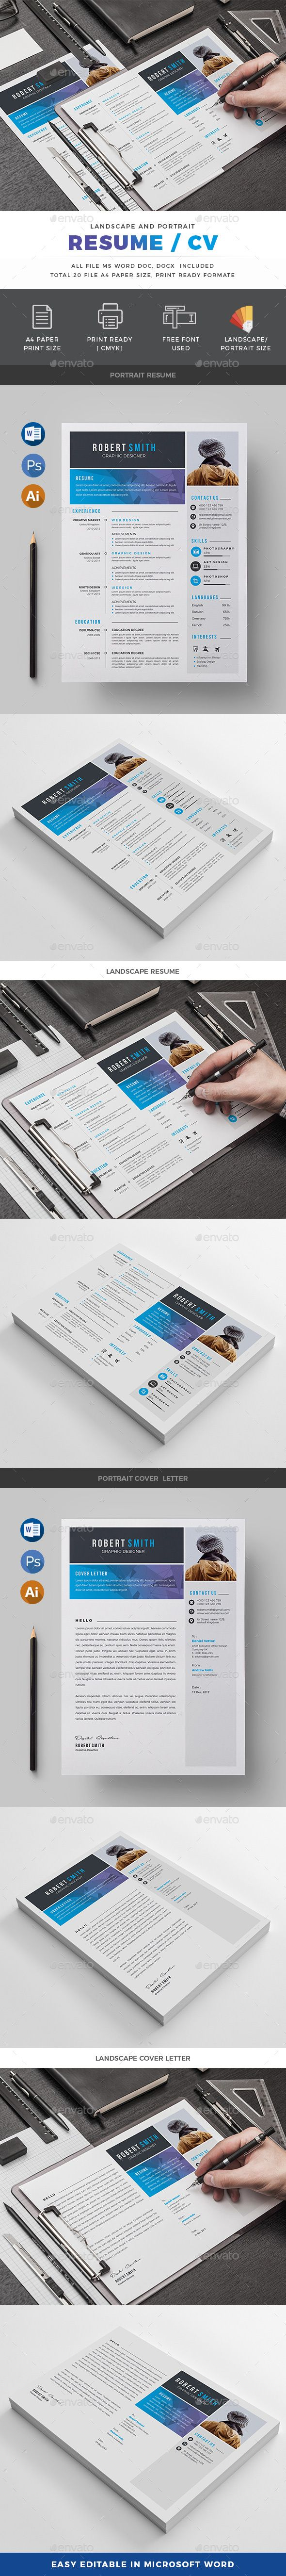 89 best RESUMES/CARDS images on Pinterest | Resume tips, Resume and ...